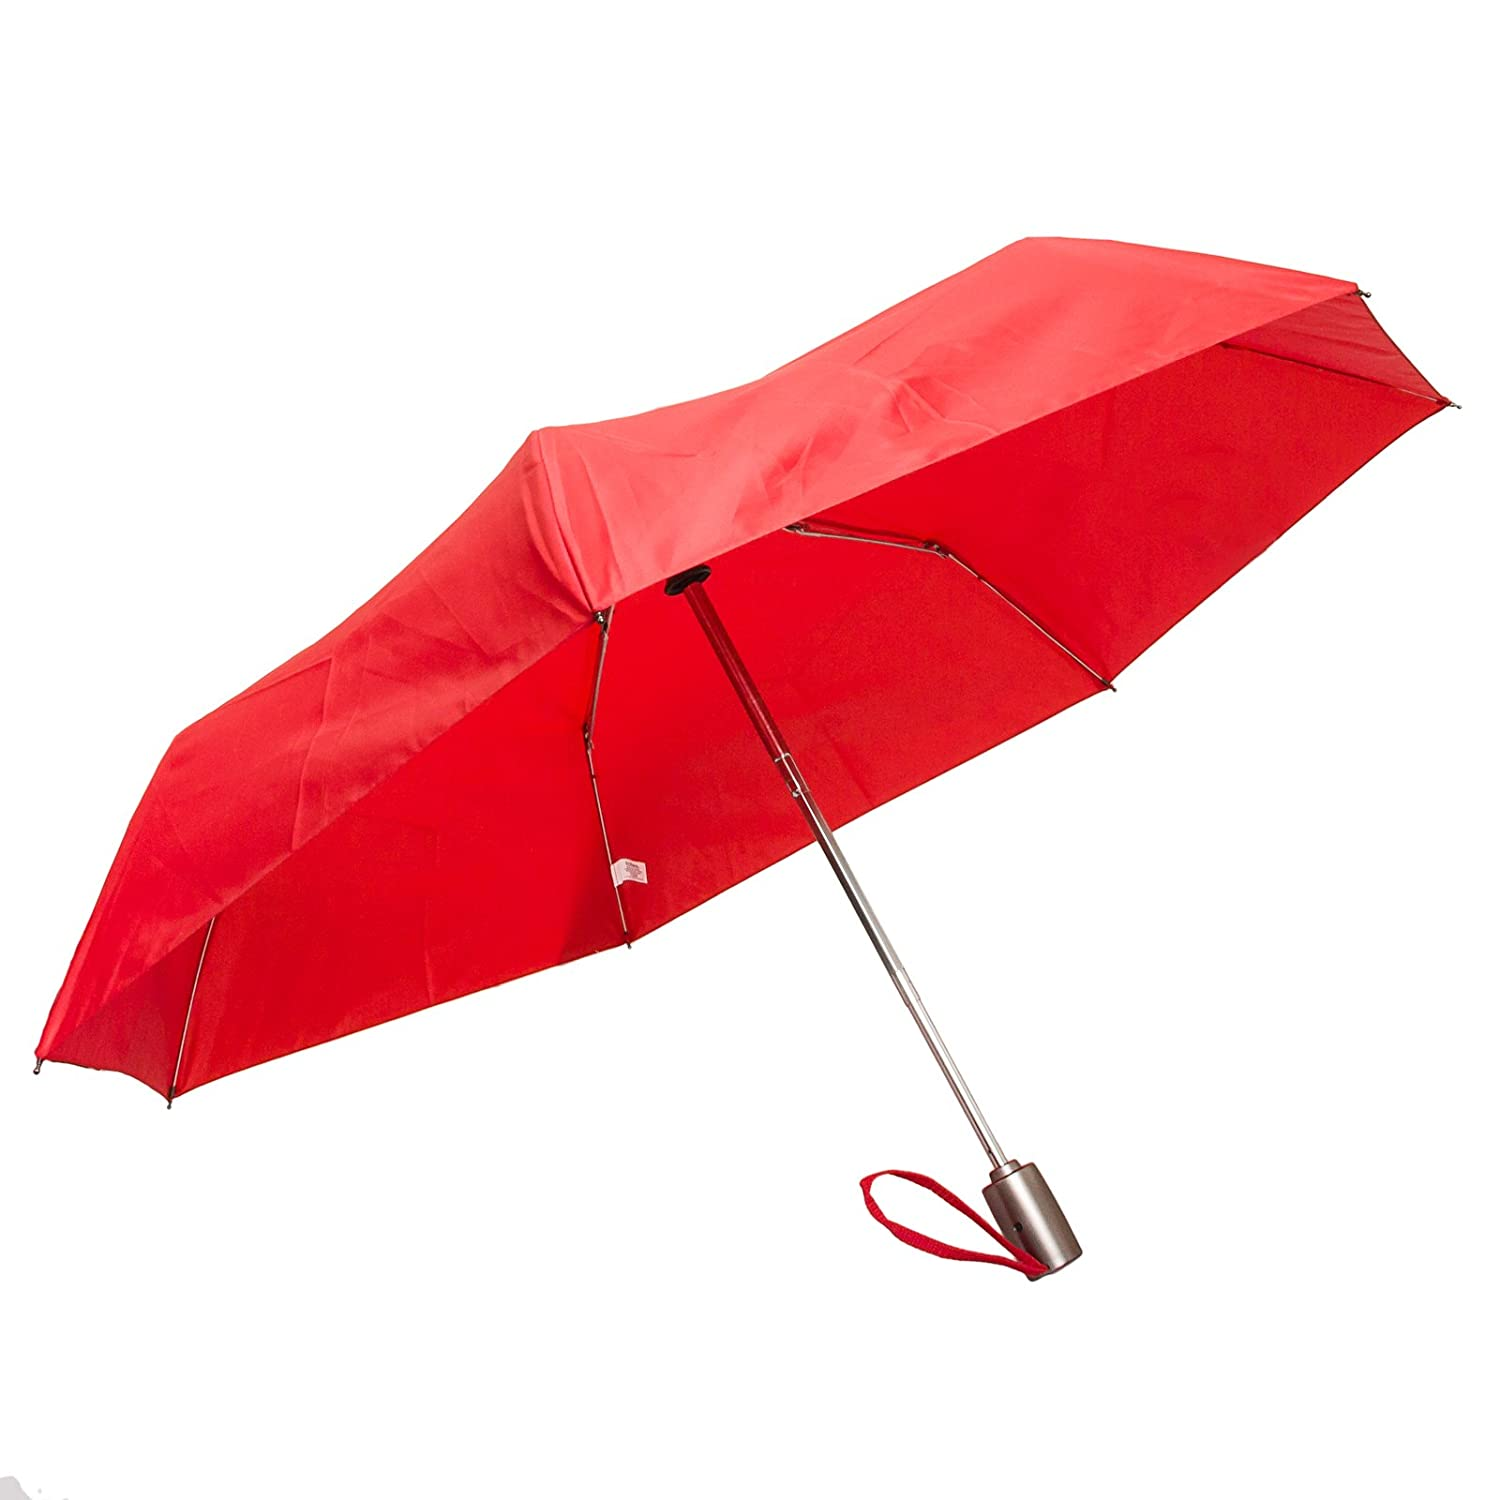 Totes Auto Open/Auto Close Umbrella w/ Grey Handle (Red)